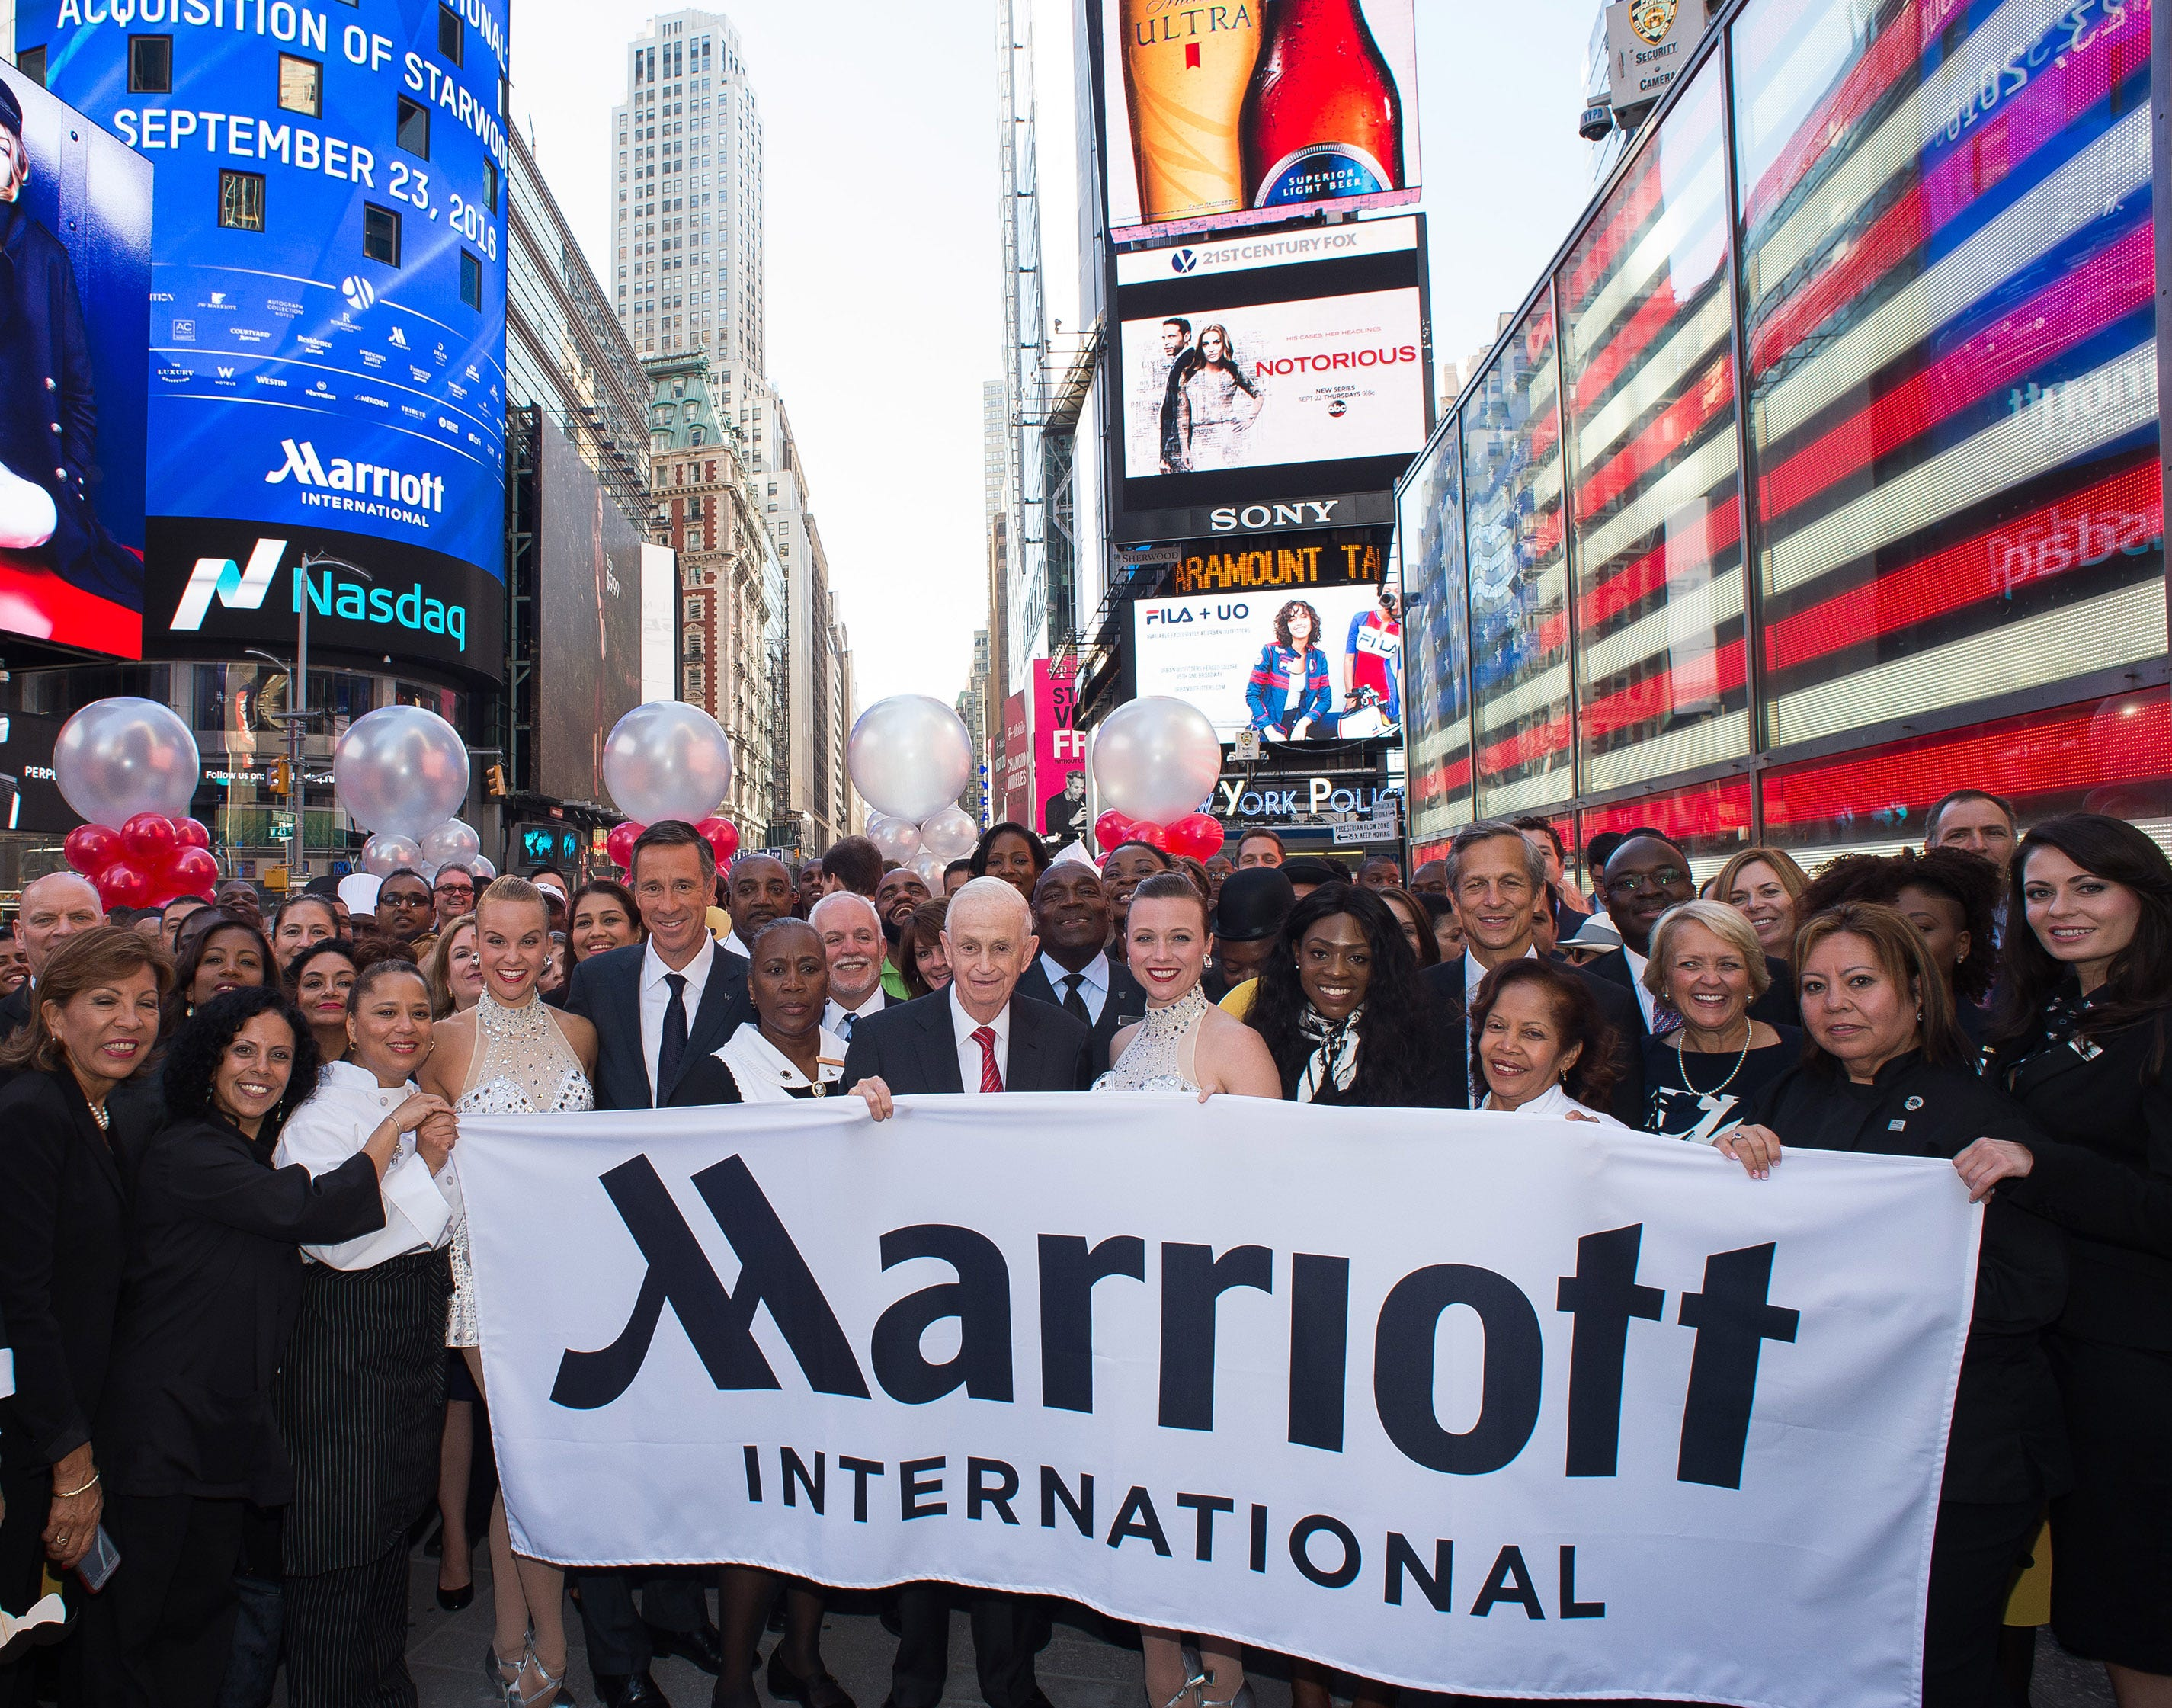 Marriott International to add 300,000 hotel rooms after Starwood deal